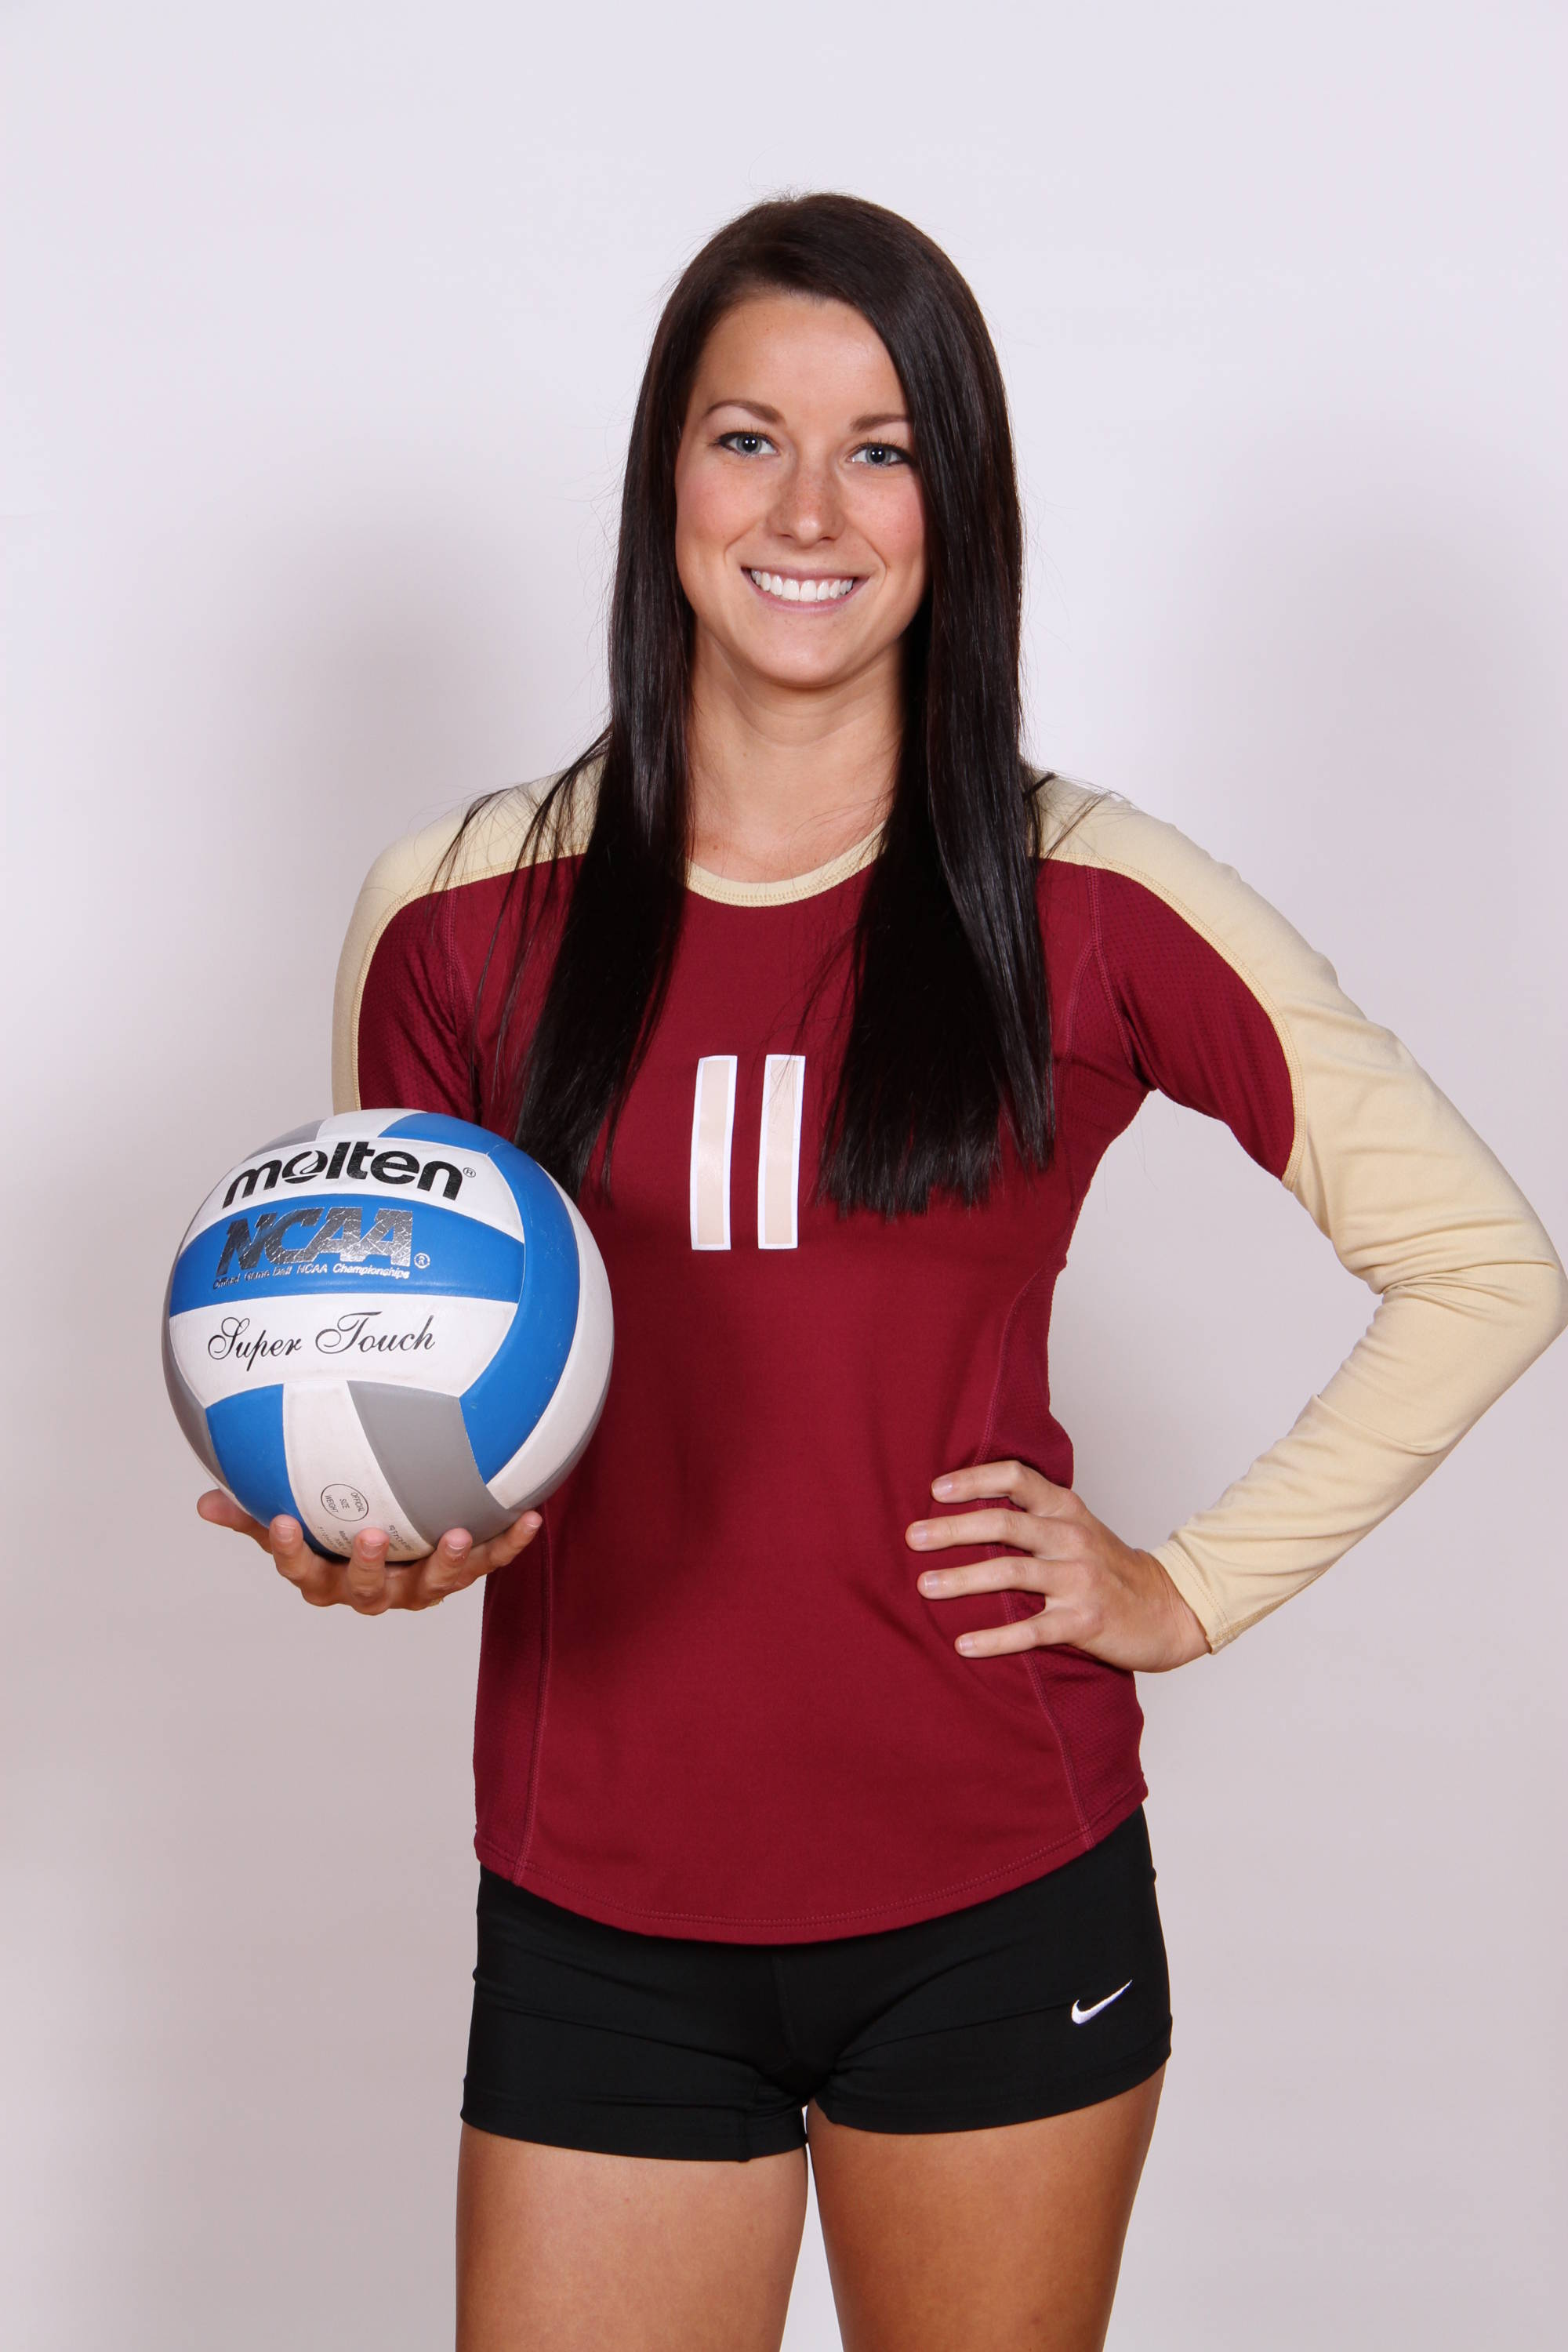 Kalee Schlabach is another welcomed addition to FSU!